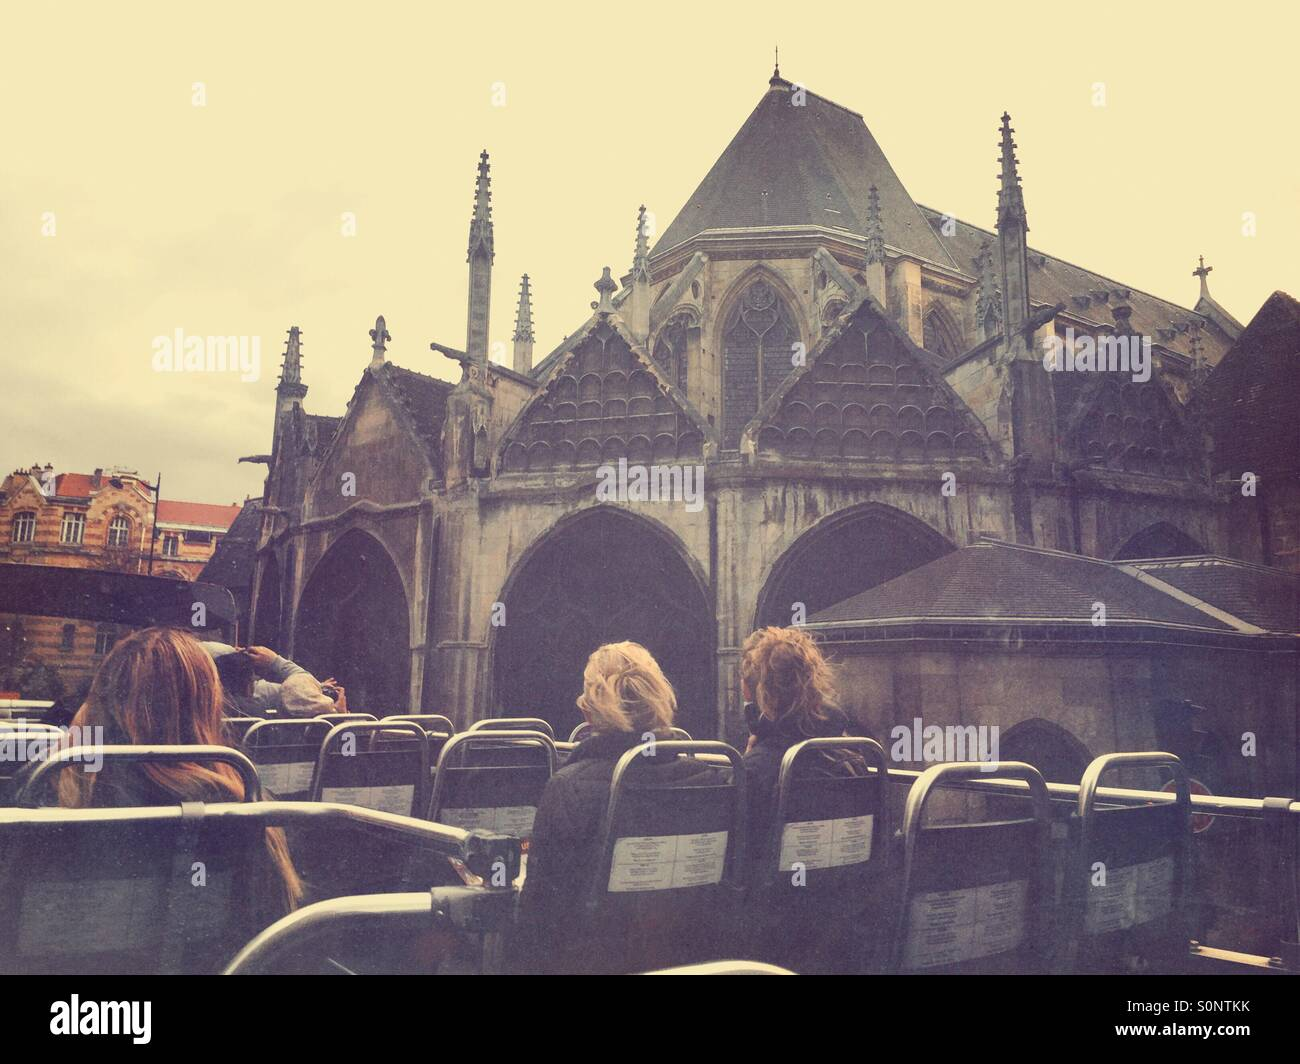 Tourists view an old building on the 5th arrondissement from roof of open air sightseeing bus in Paris, France. Stock Photo